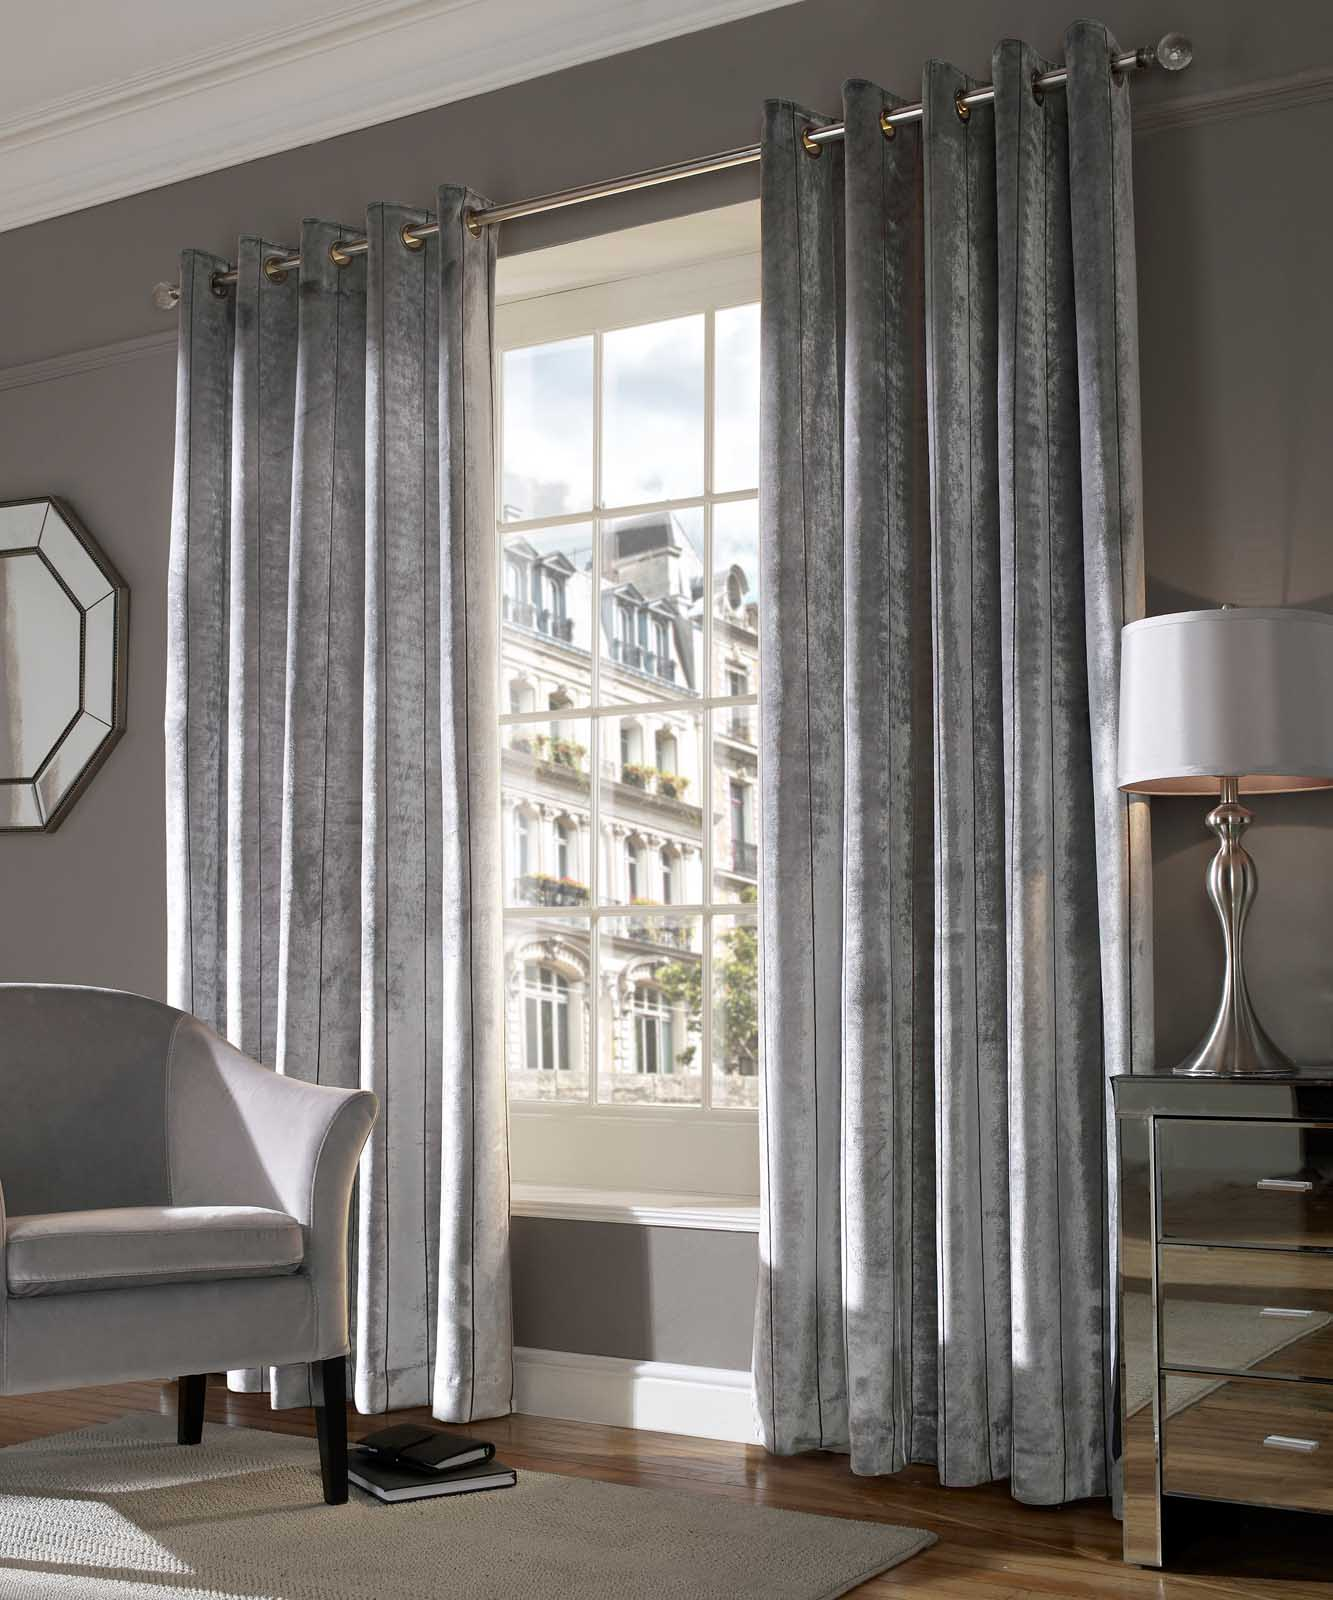 Beautiful http://www.ebay.co.uk/itm/Kylie-Minogue-Bedding-ALEXA-Silver-Grey -Duvet-Quilt-Cushion-or-Runner-/221827435514 silver grey curtains